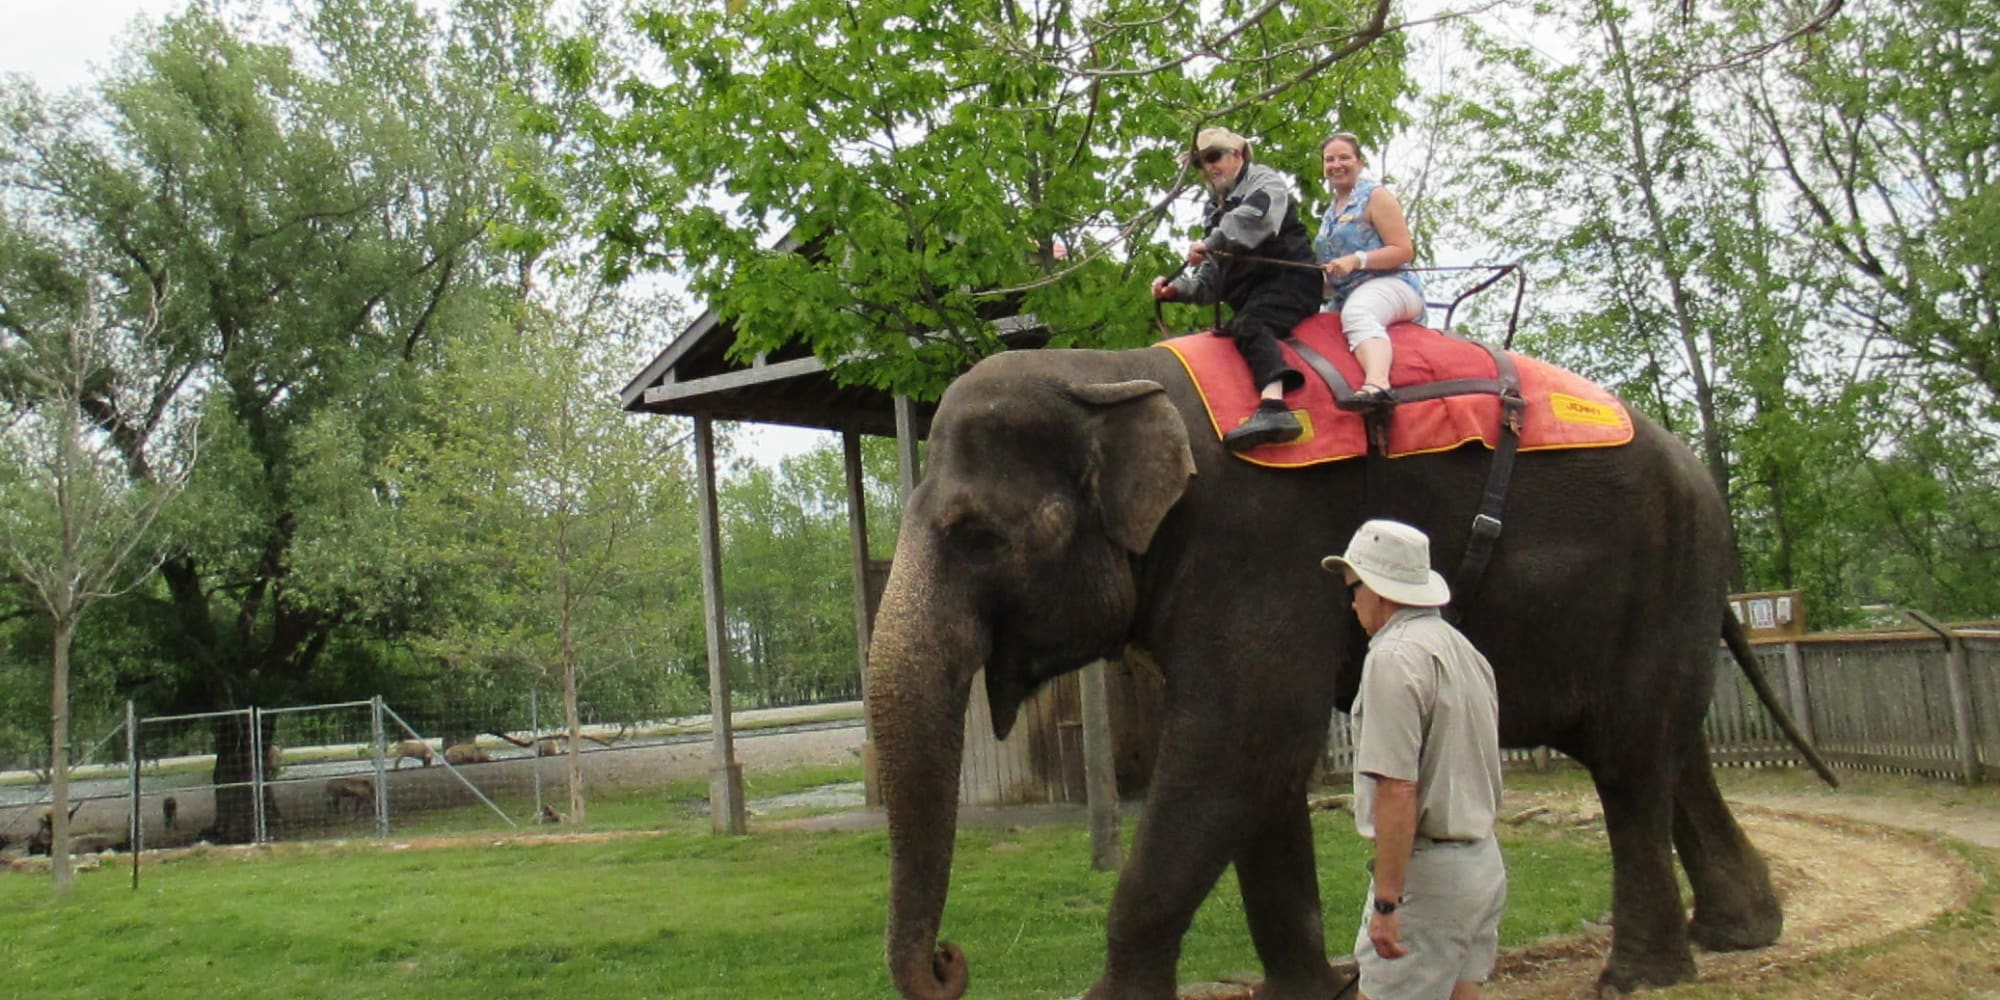 Residents riding a elefant at Cedarview Gracious Retirement Living in Woodstock, Ontario